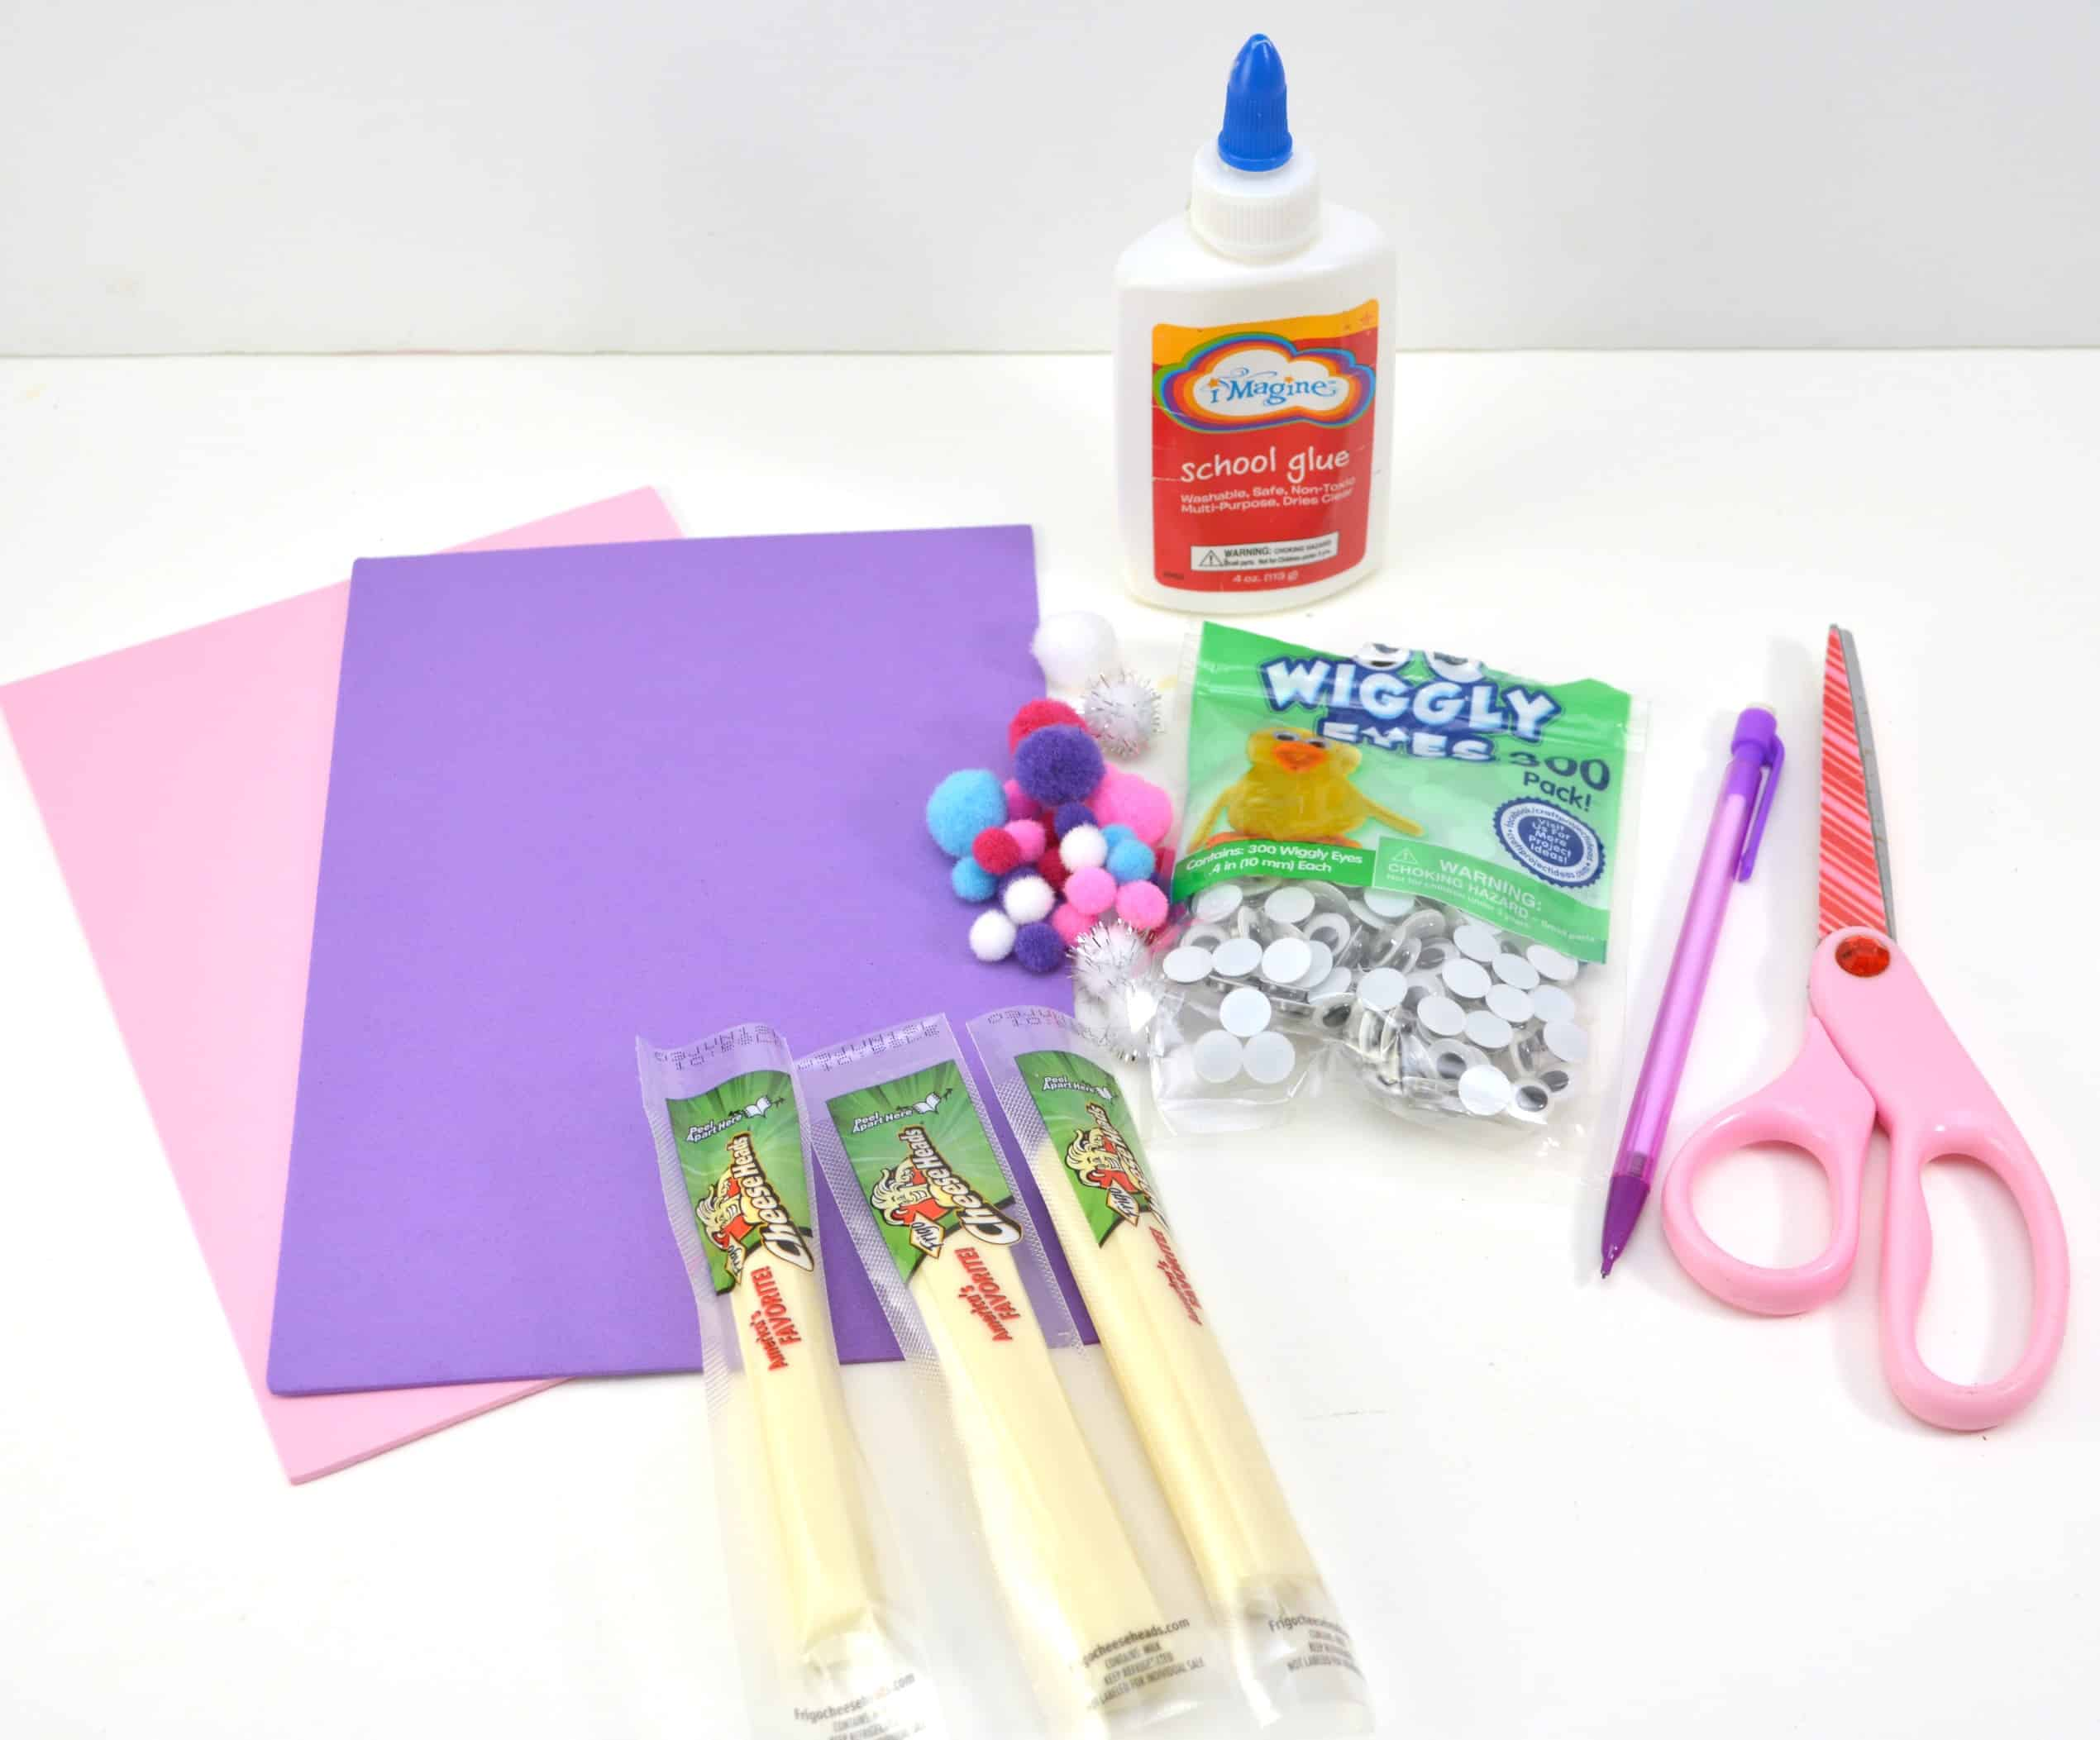 Easter is identical with bunnies and eggs. Today I would like to share Easter Bunny Cheese sticksfor your little people's craft activities.